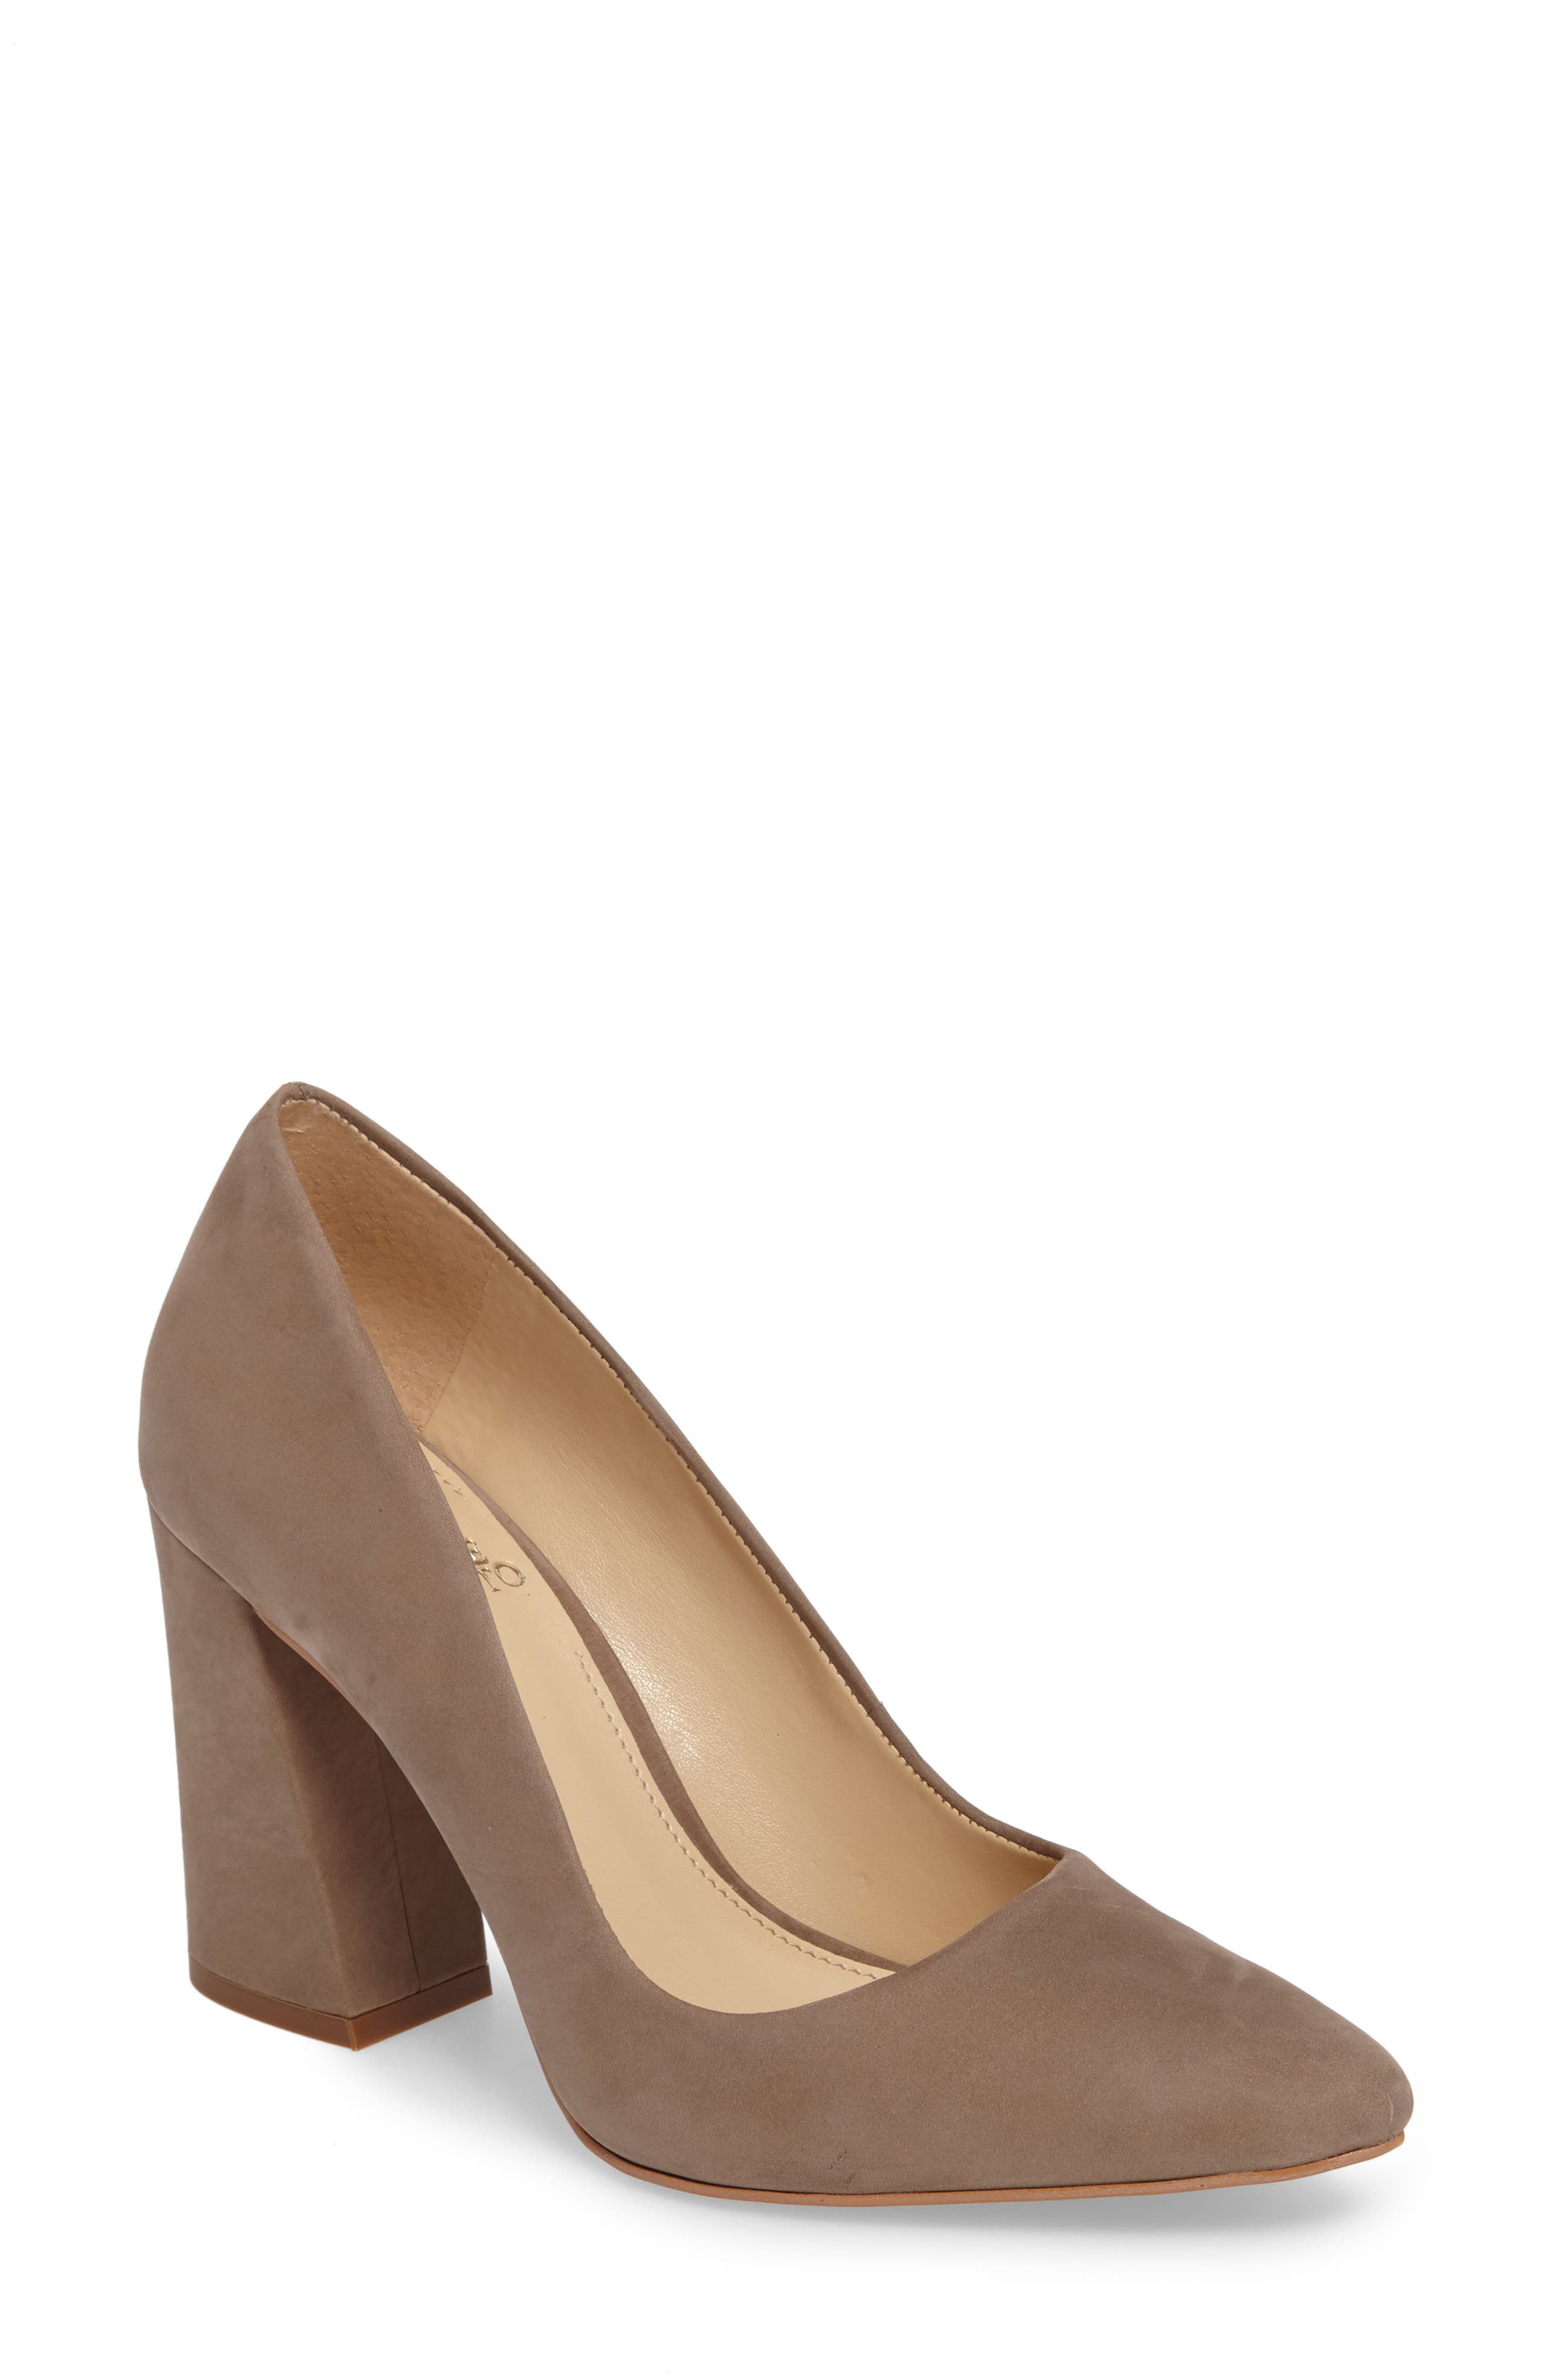 Talise Pointy Toe Pump,                         Main,                         color, Smoke Show Nubuck Leather